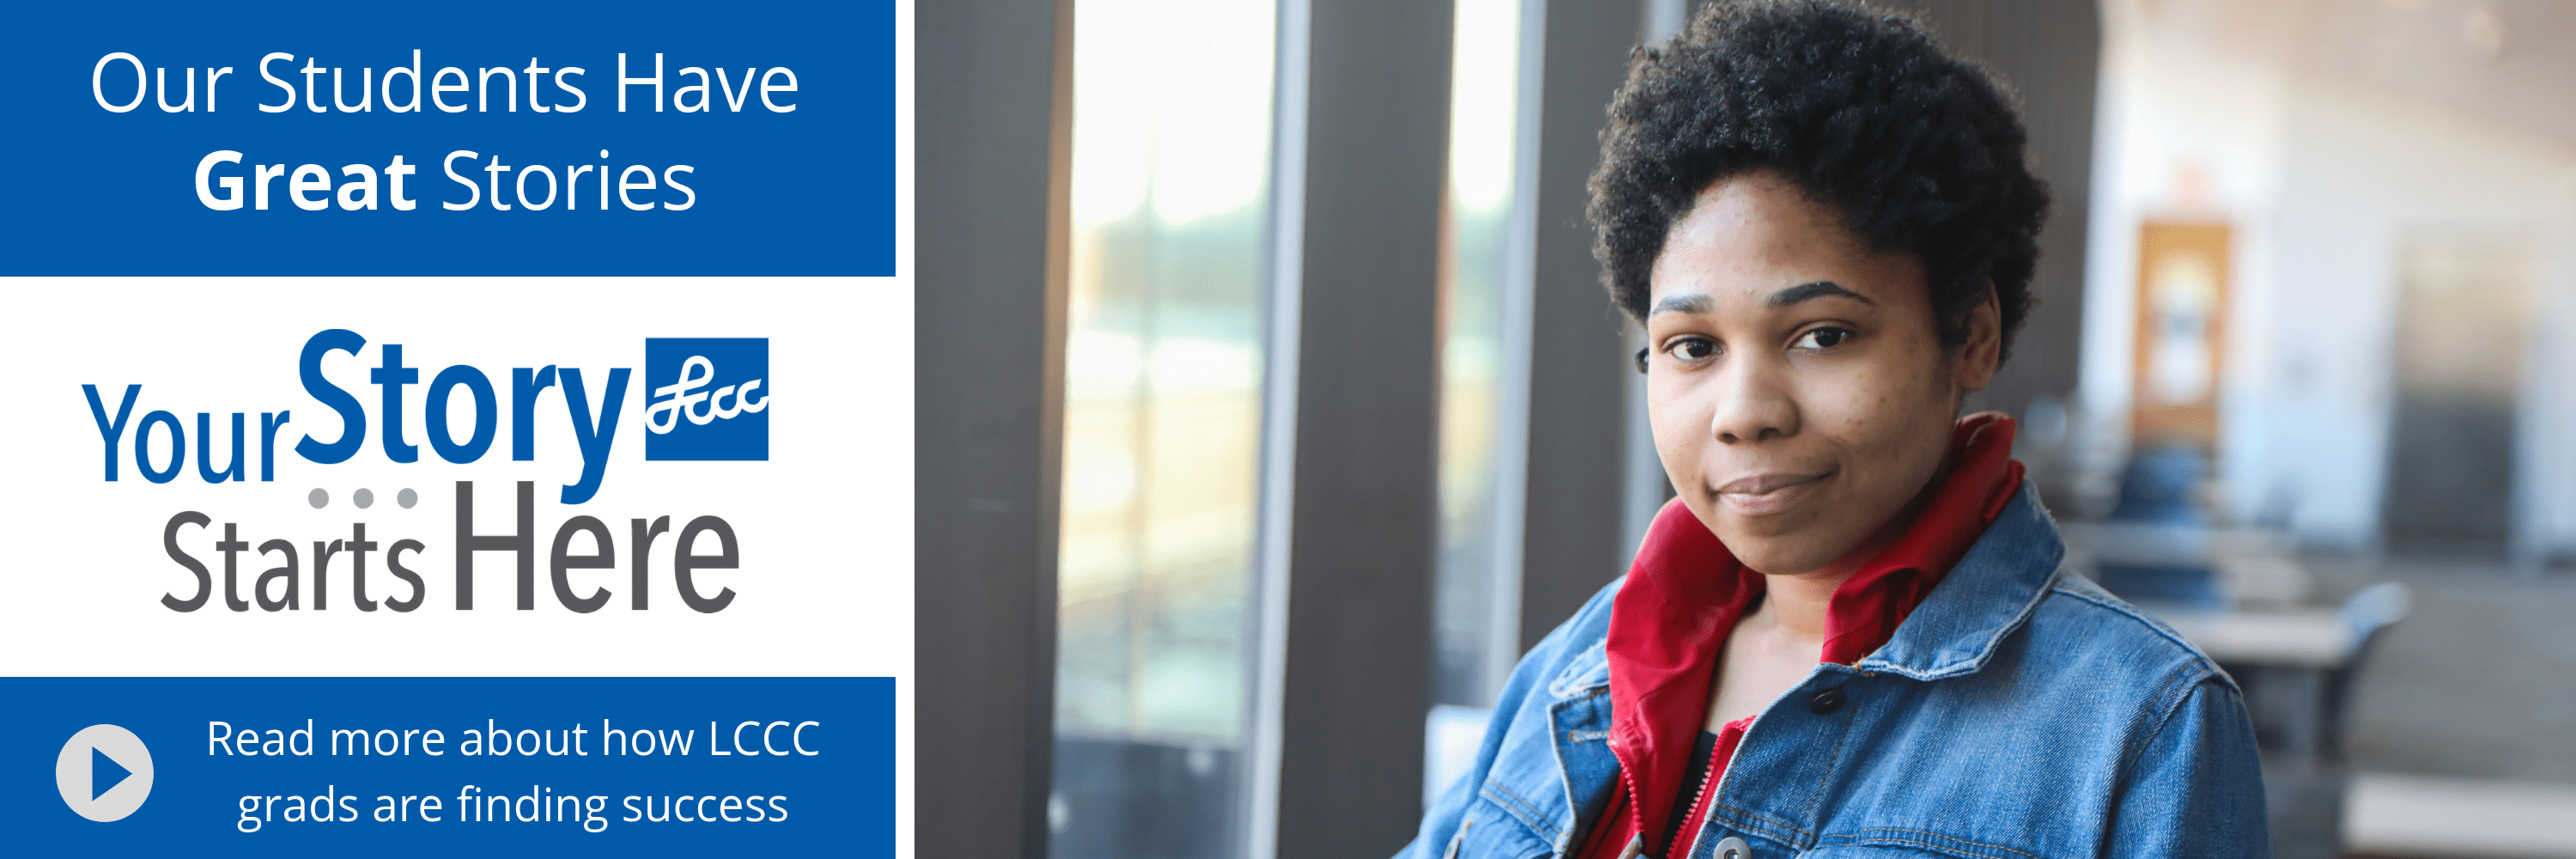 Our Students Have Great Stories. Read more about how LCCC grads are finding success.